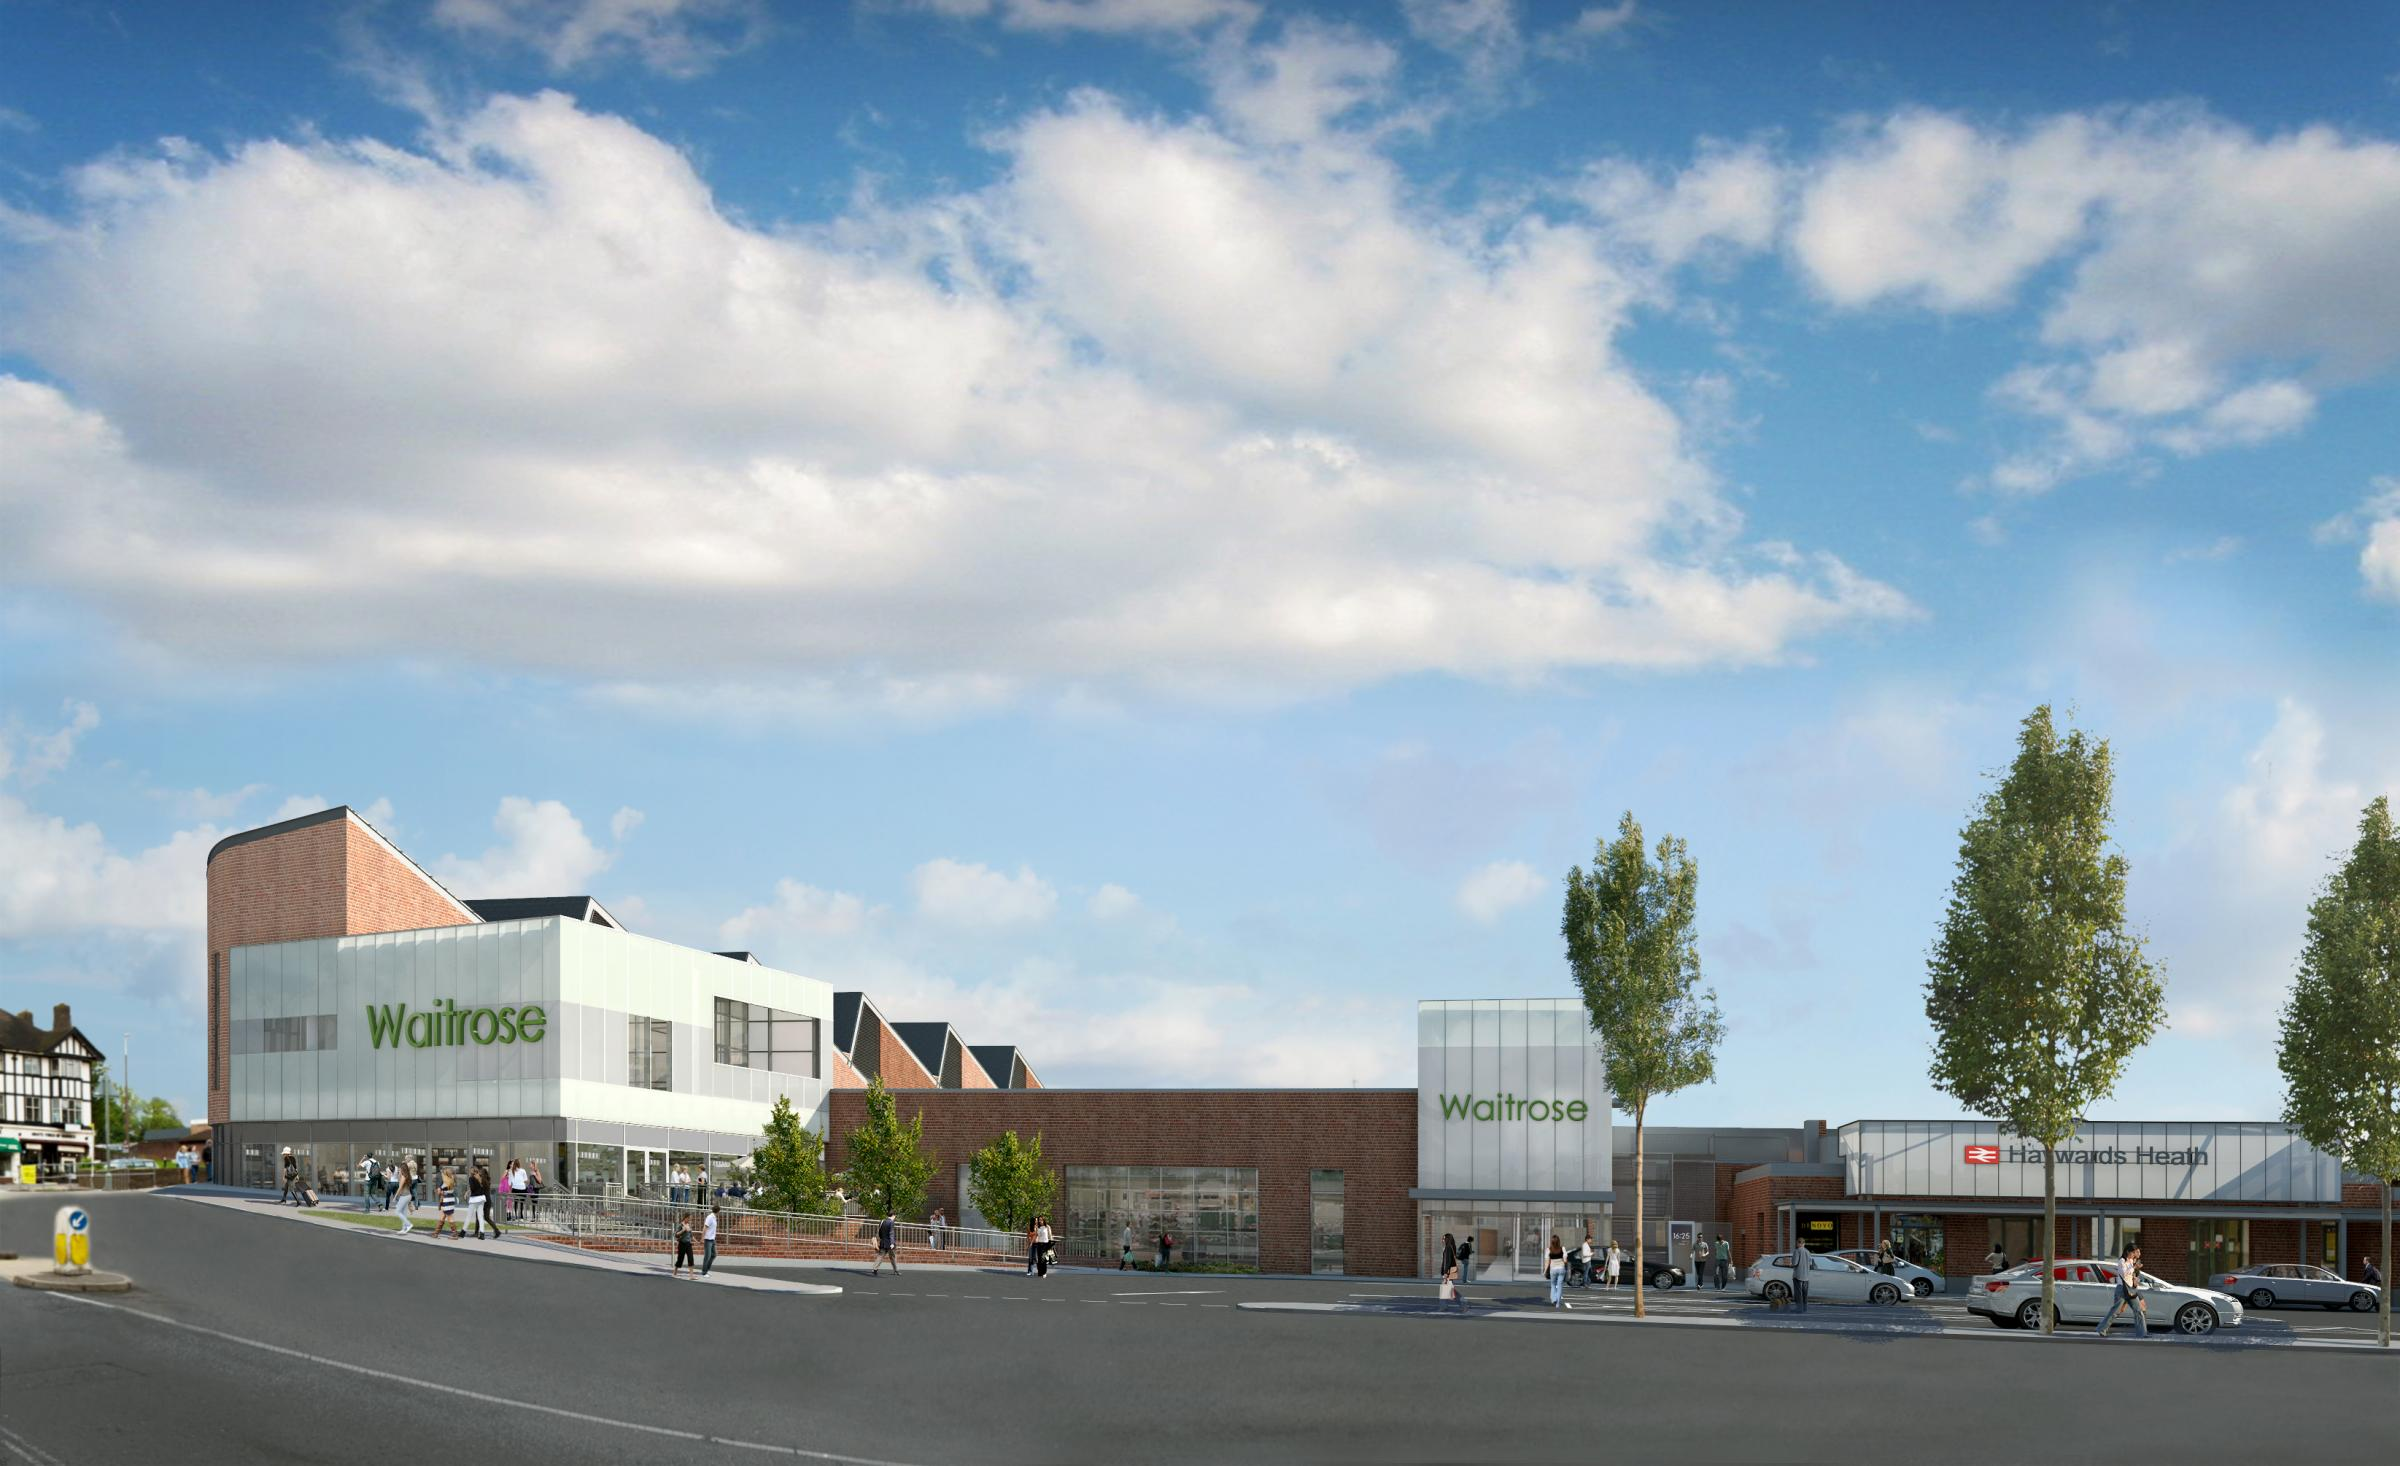 New Waitrose Superstore Will Open To Public In Haywards Heath The